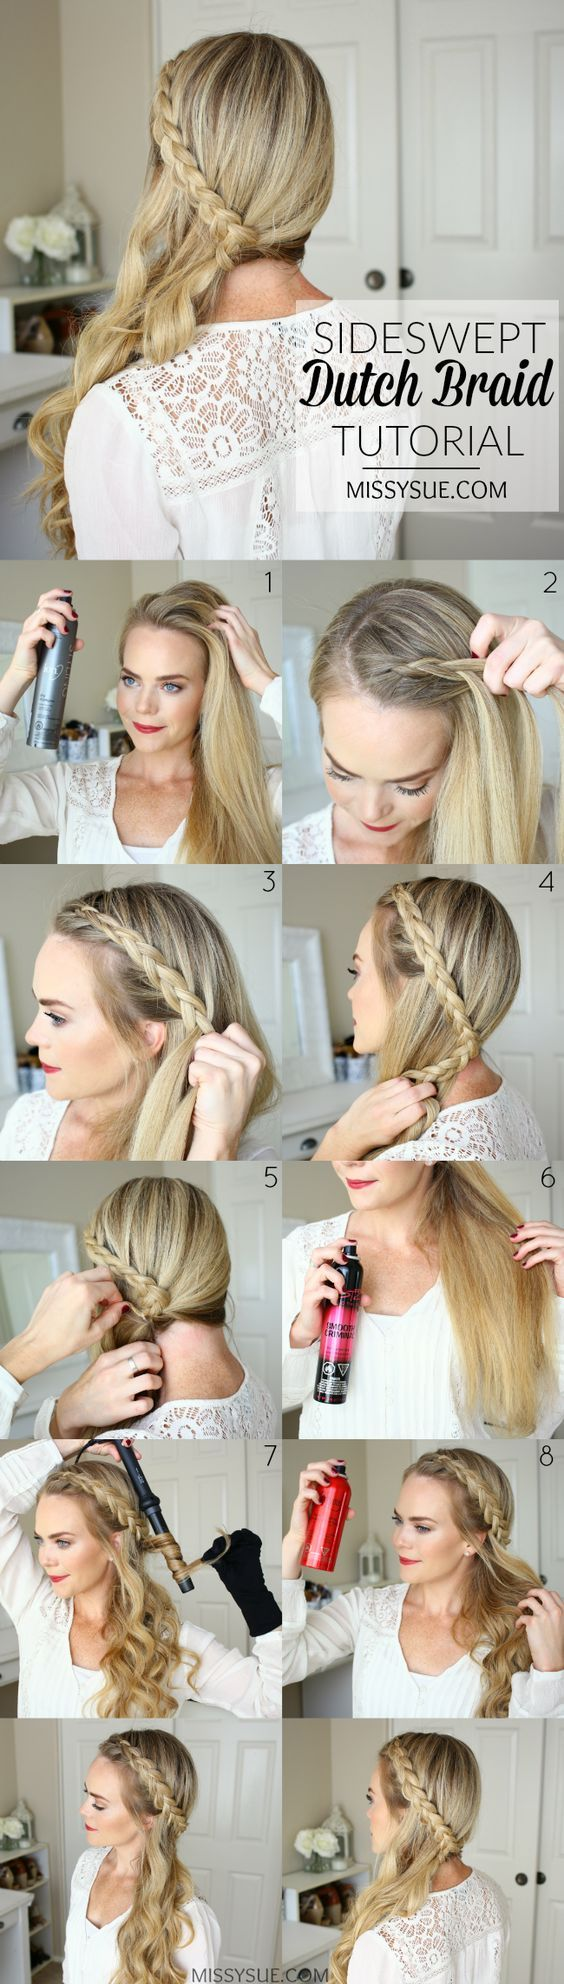 Easy Hairstyles On The Go Best 25 Easy Hairstyles Ideas On Pinterest Hair Styles Easy